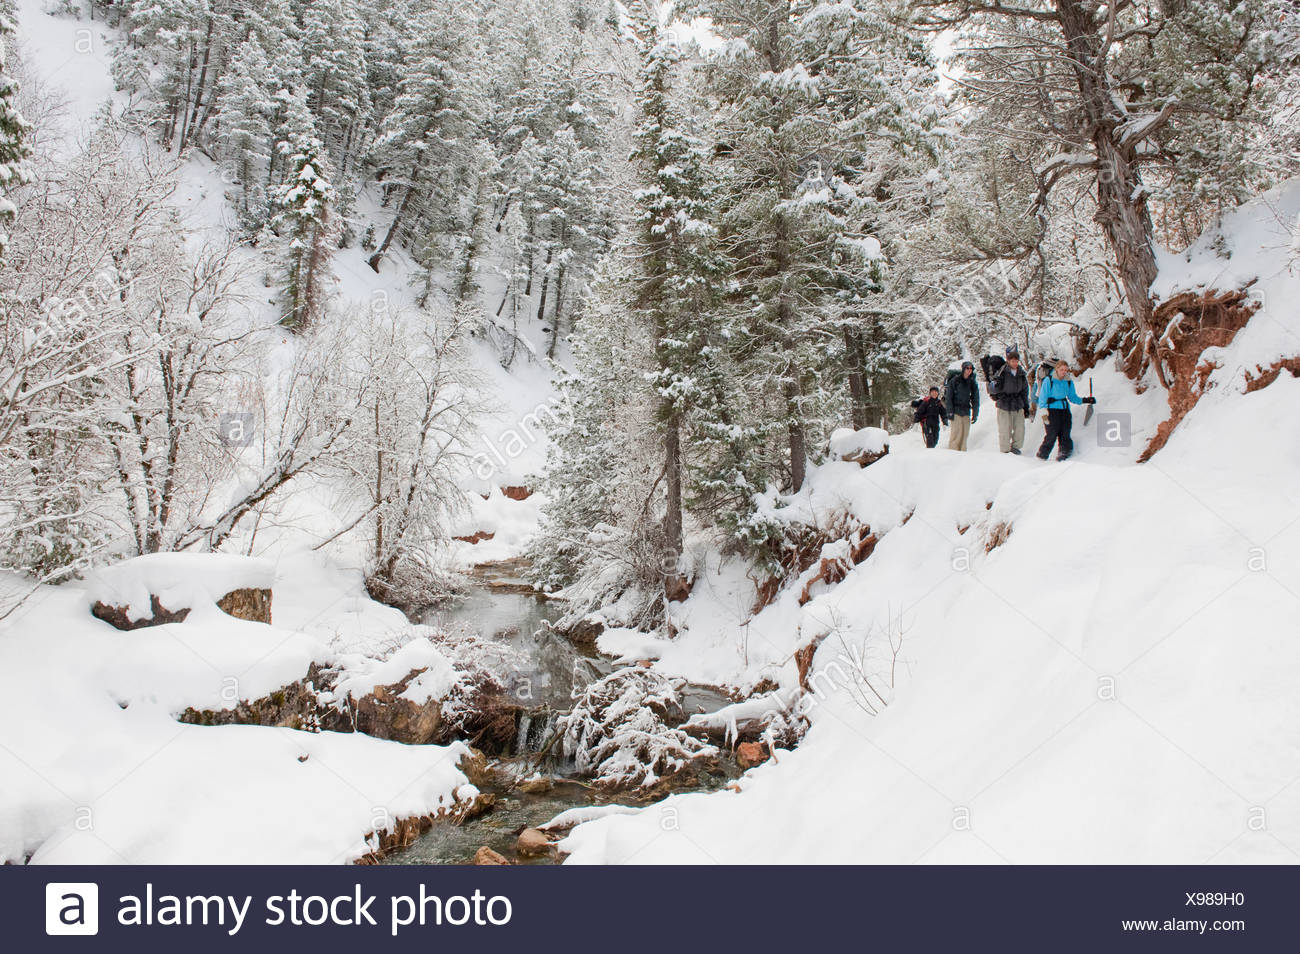 Four people backpack along a snowy trail next to a stream in Diamond Fork, Springville, Utah. - Stock Image